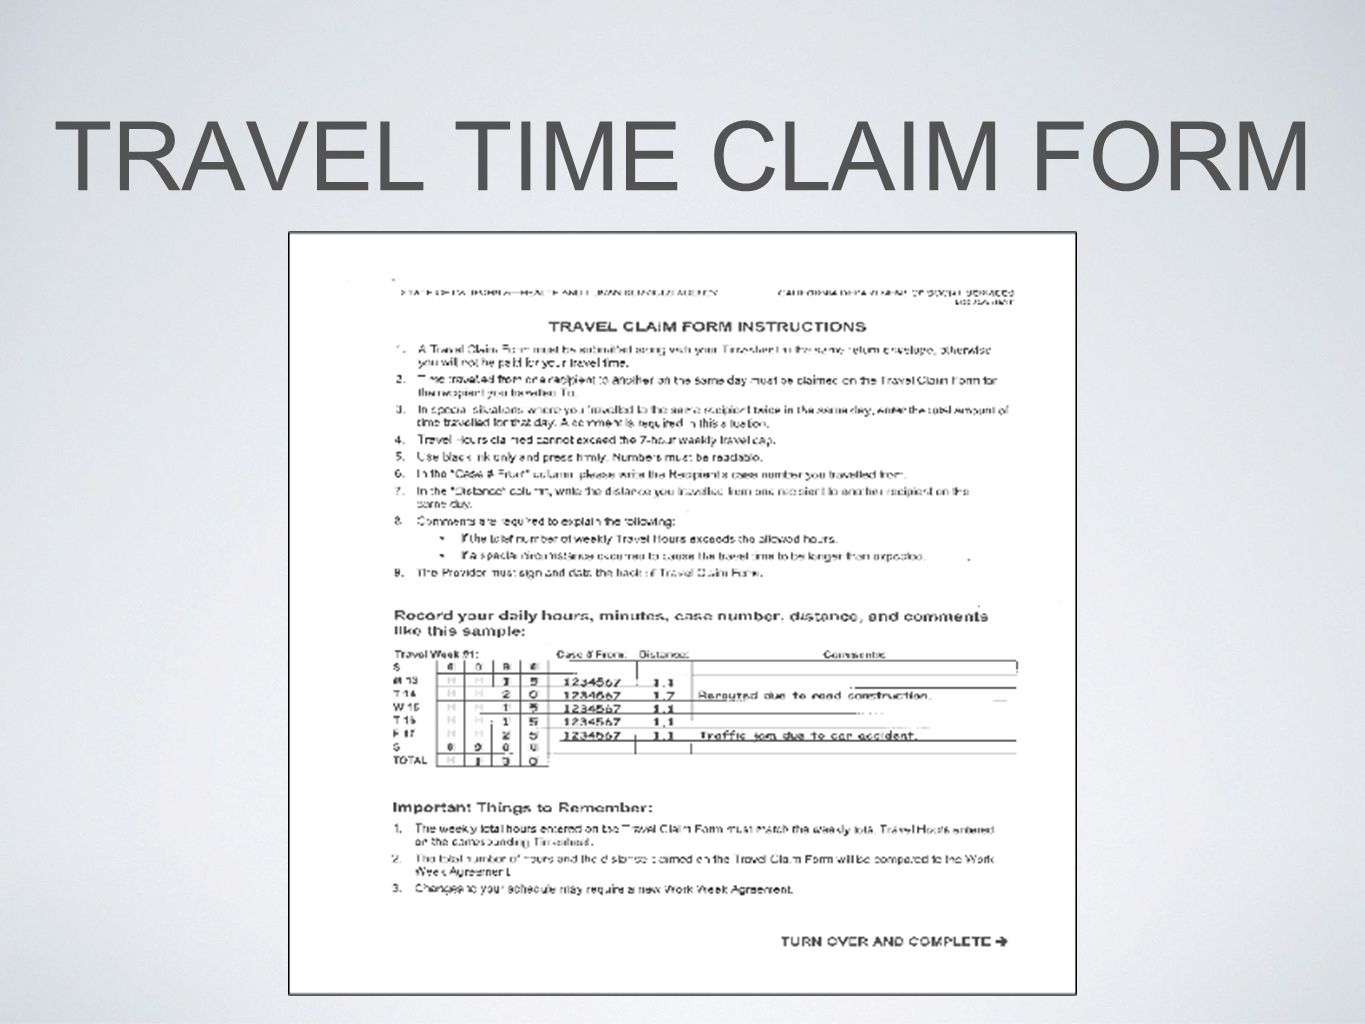 TRAVEL TIME CLAIM FORM